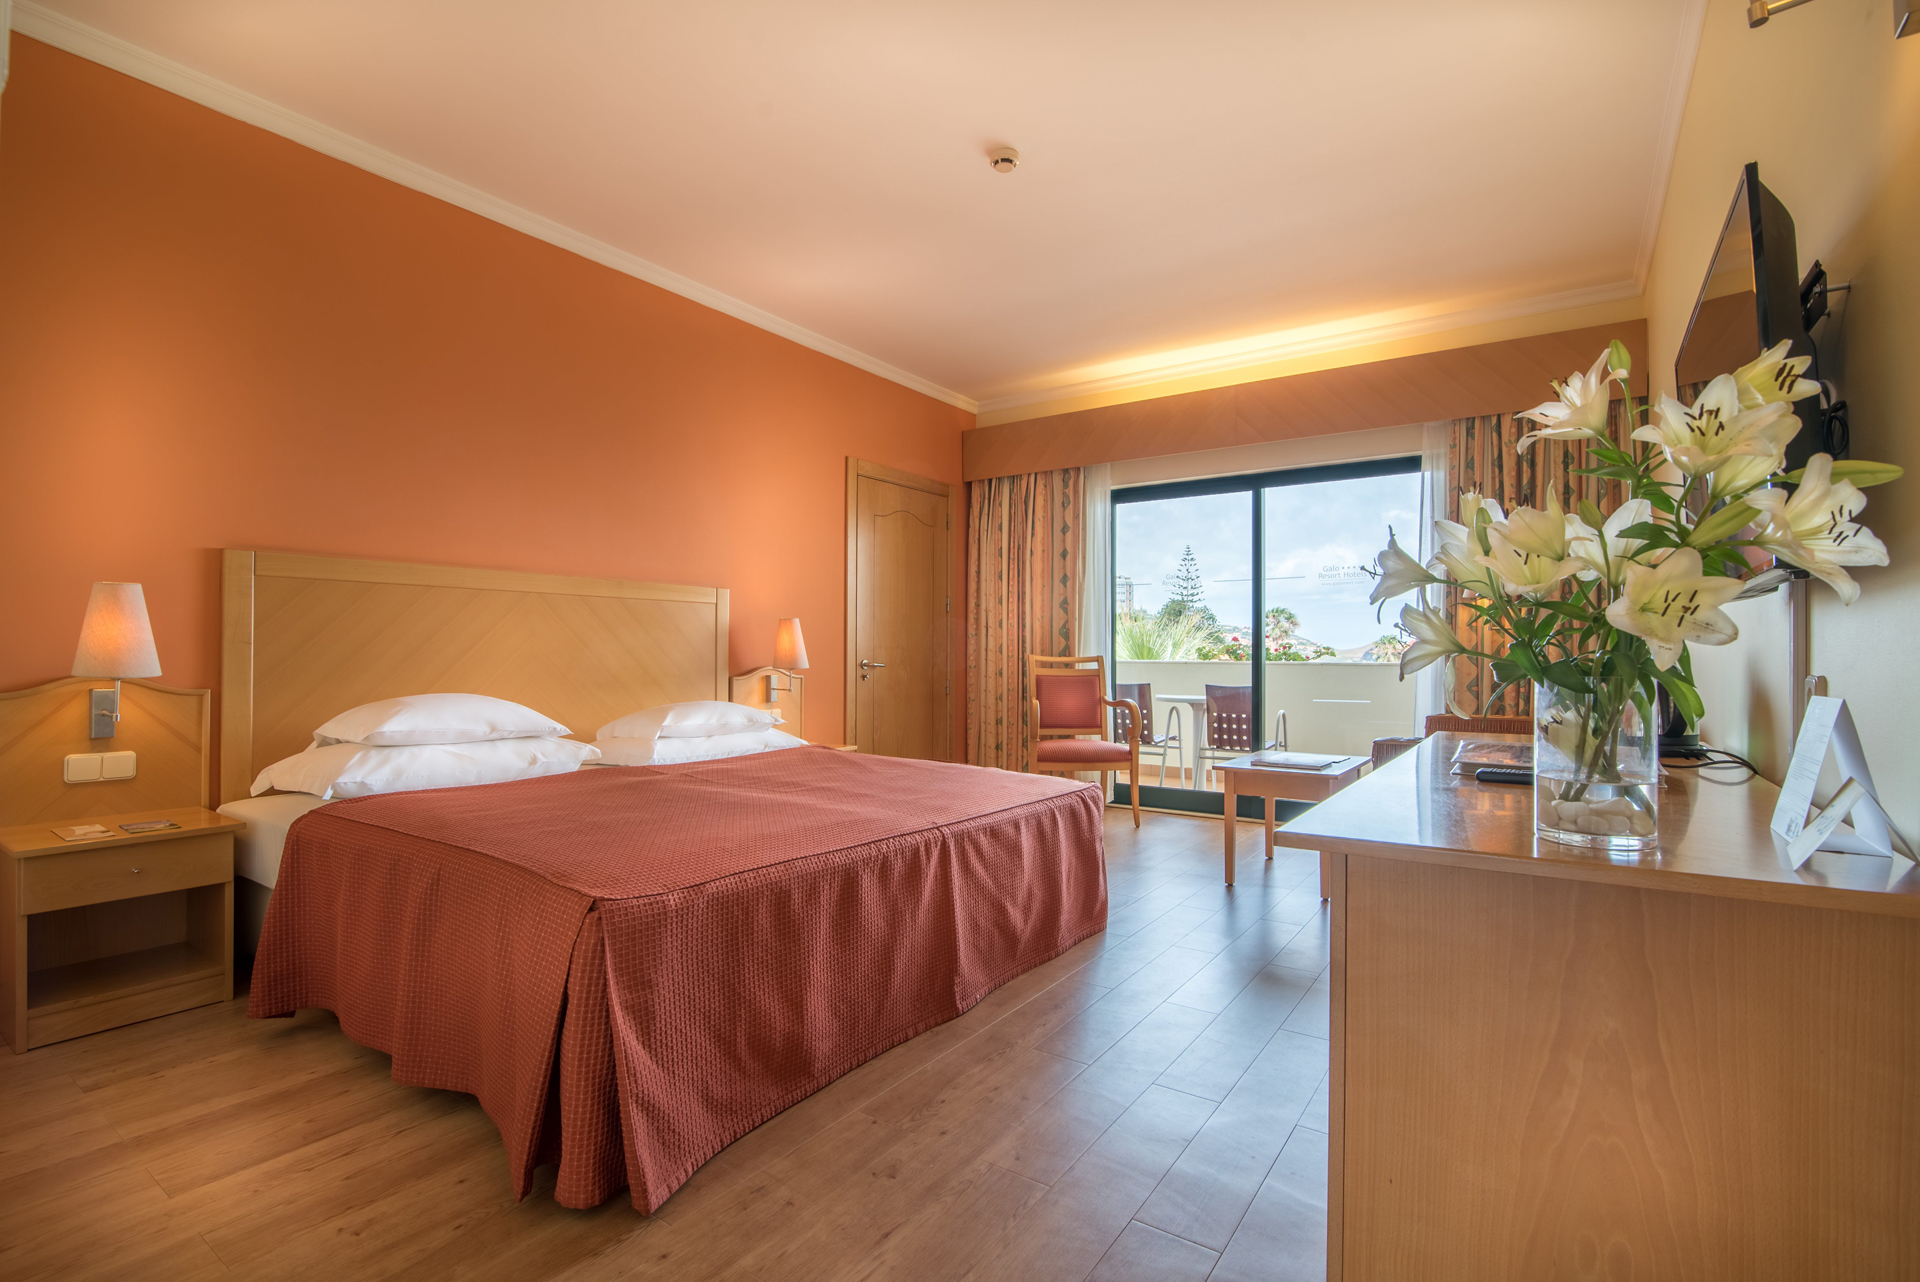 Canico Surf Hotel in Madeira double room